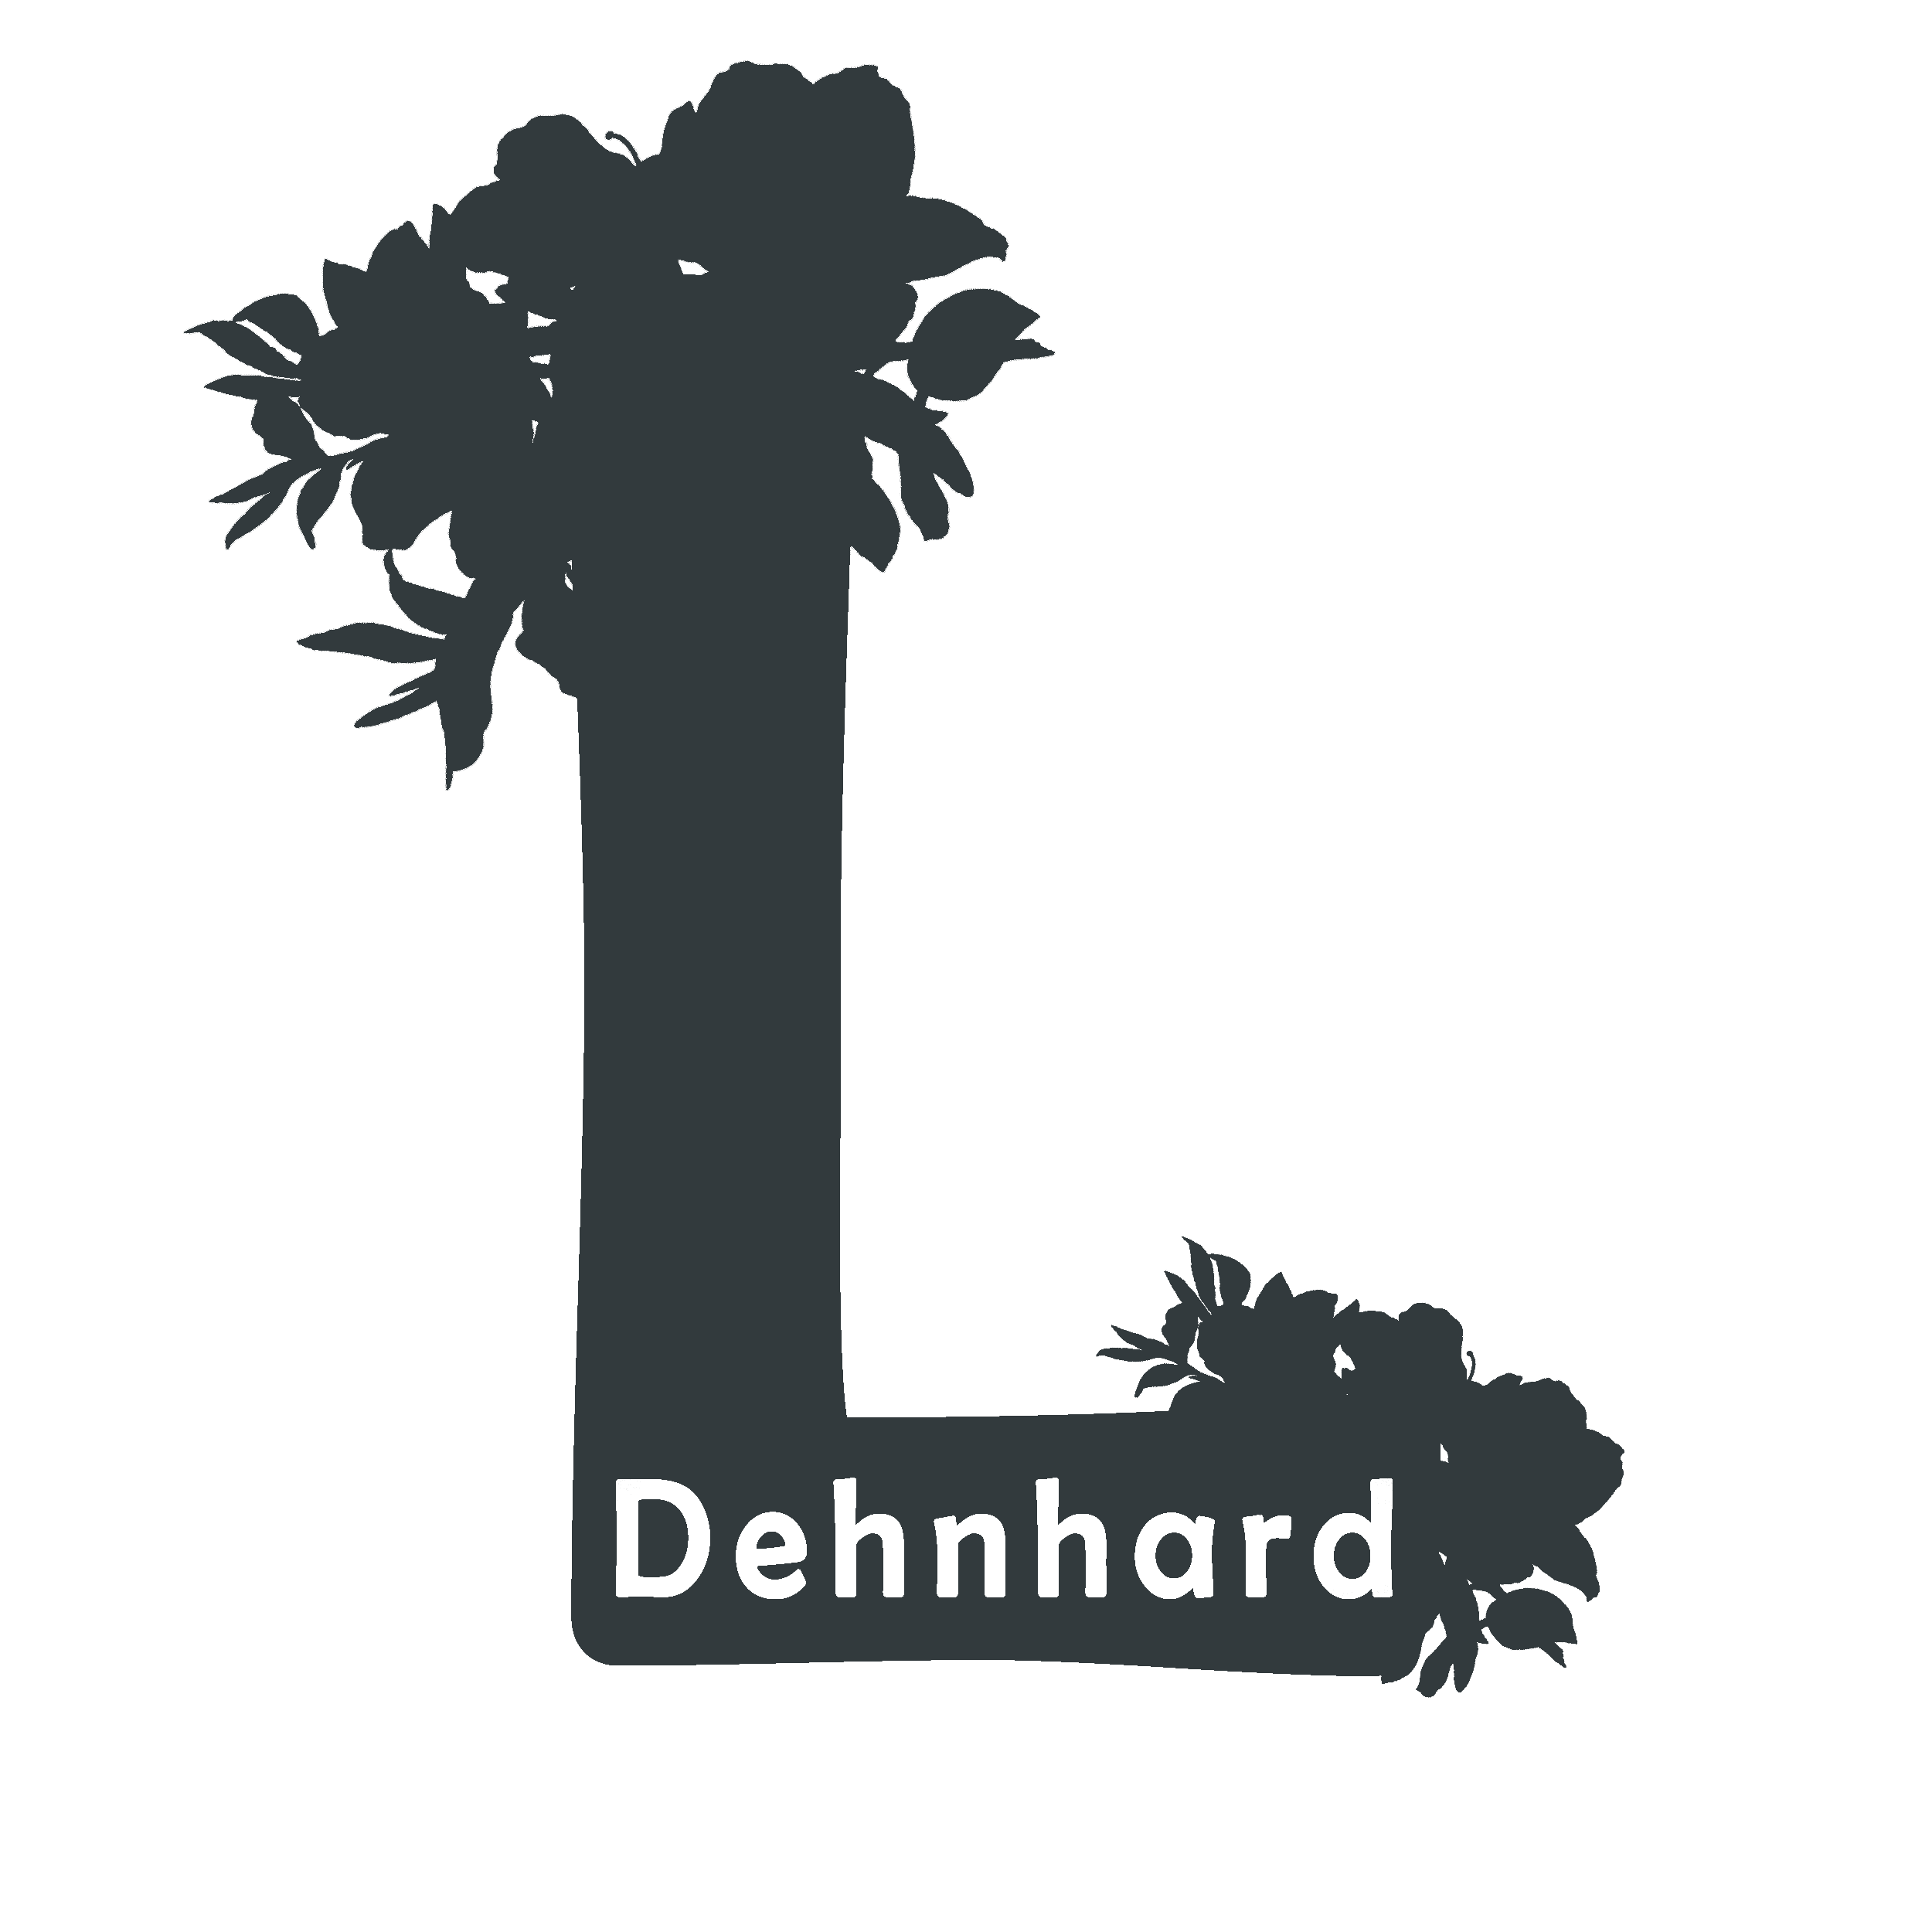 Lorelle Dehnhard Members